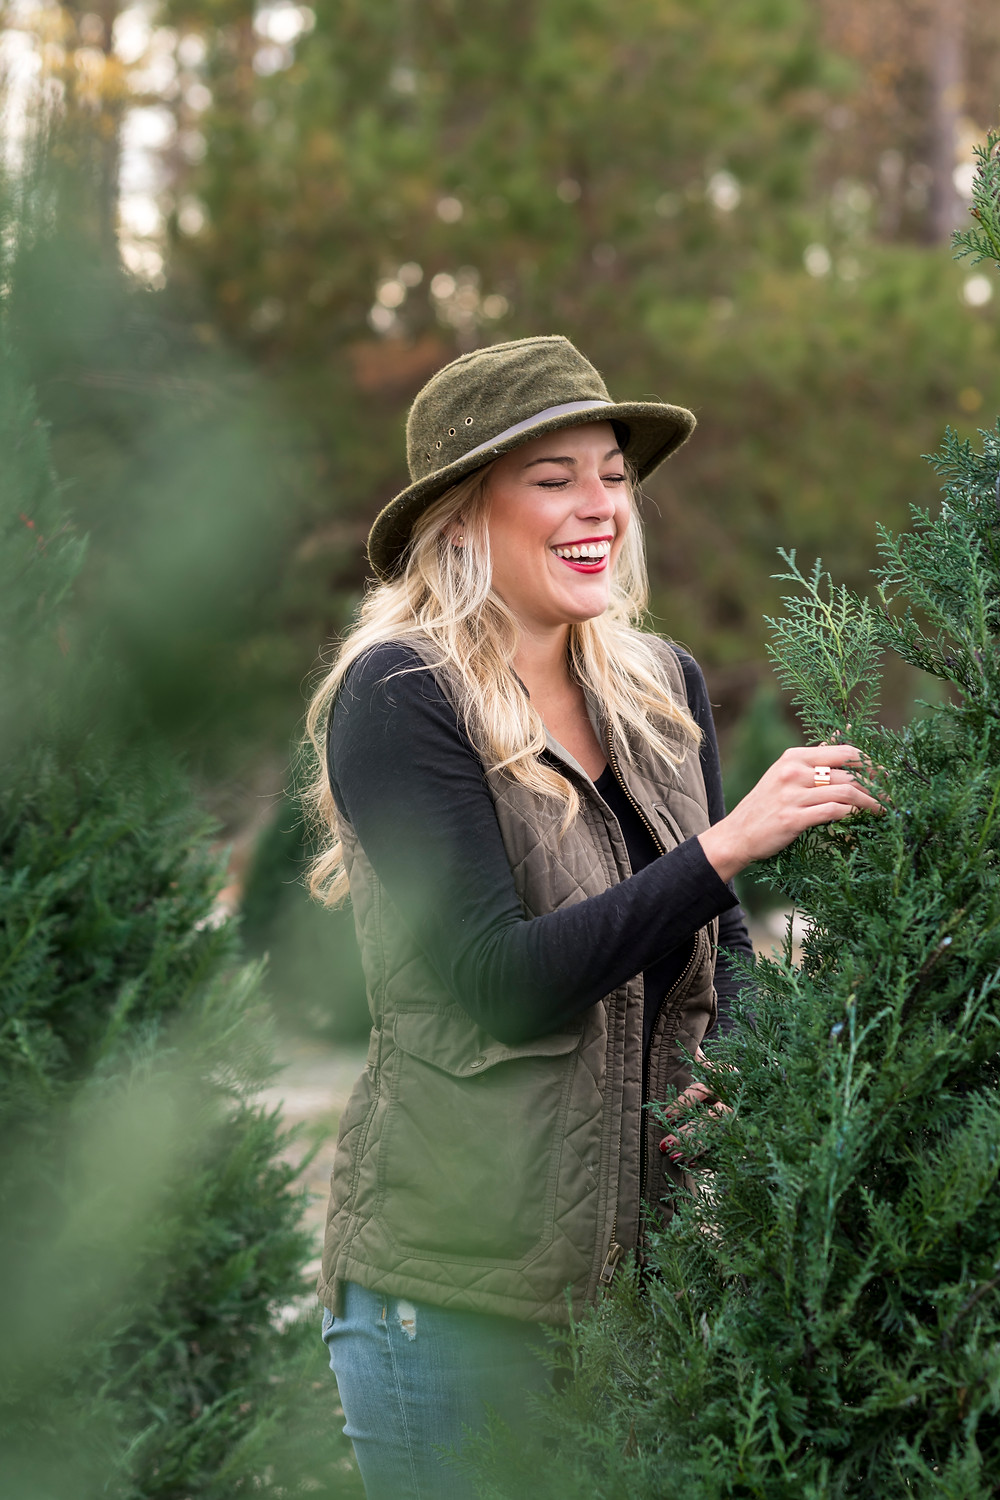 Brand Photography, Branding Photographer in Savannah Georgia, Salt & Shore Company, Truitt's Christmas Tree Farm